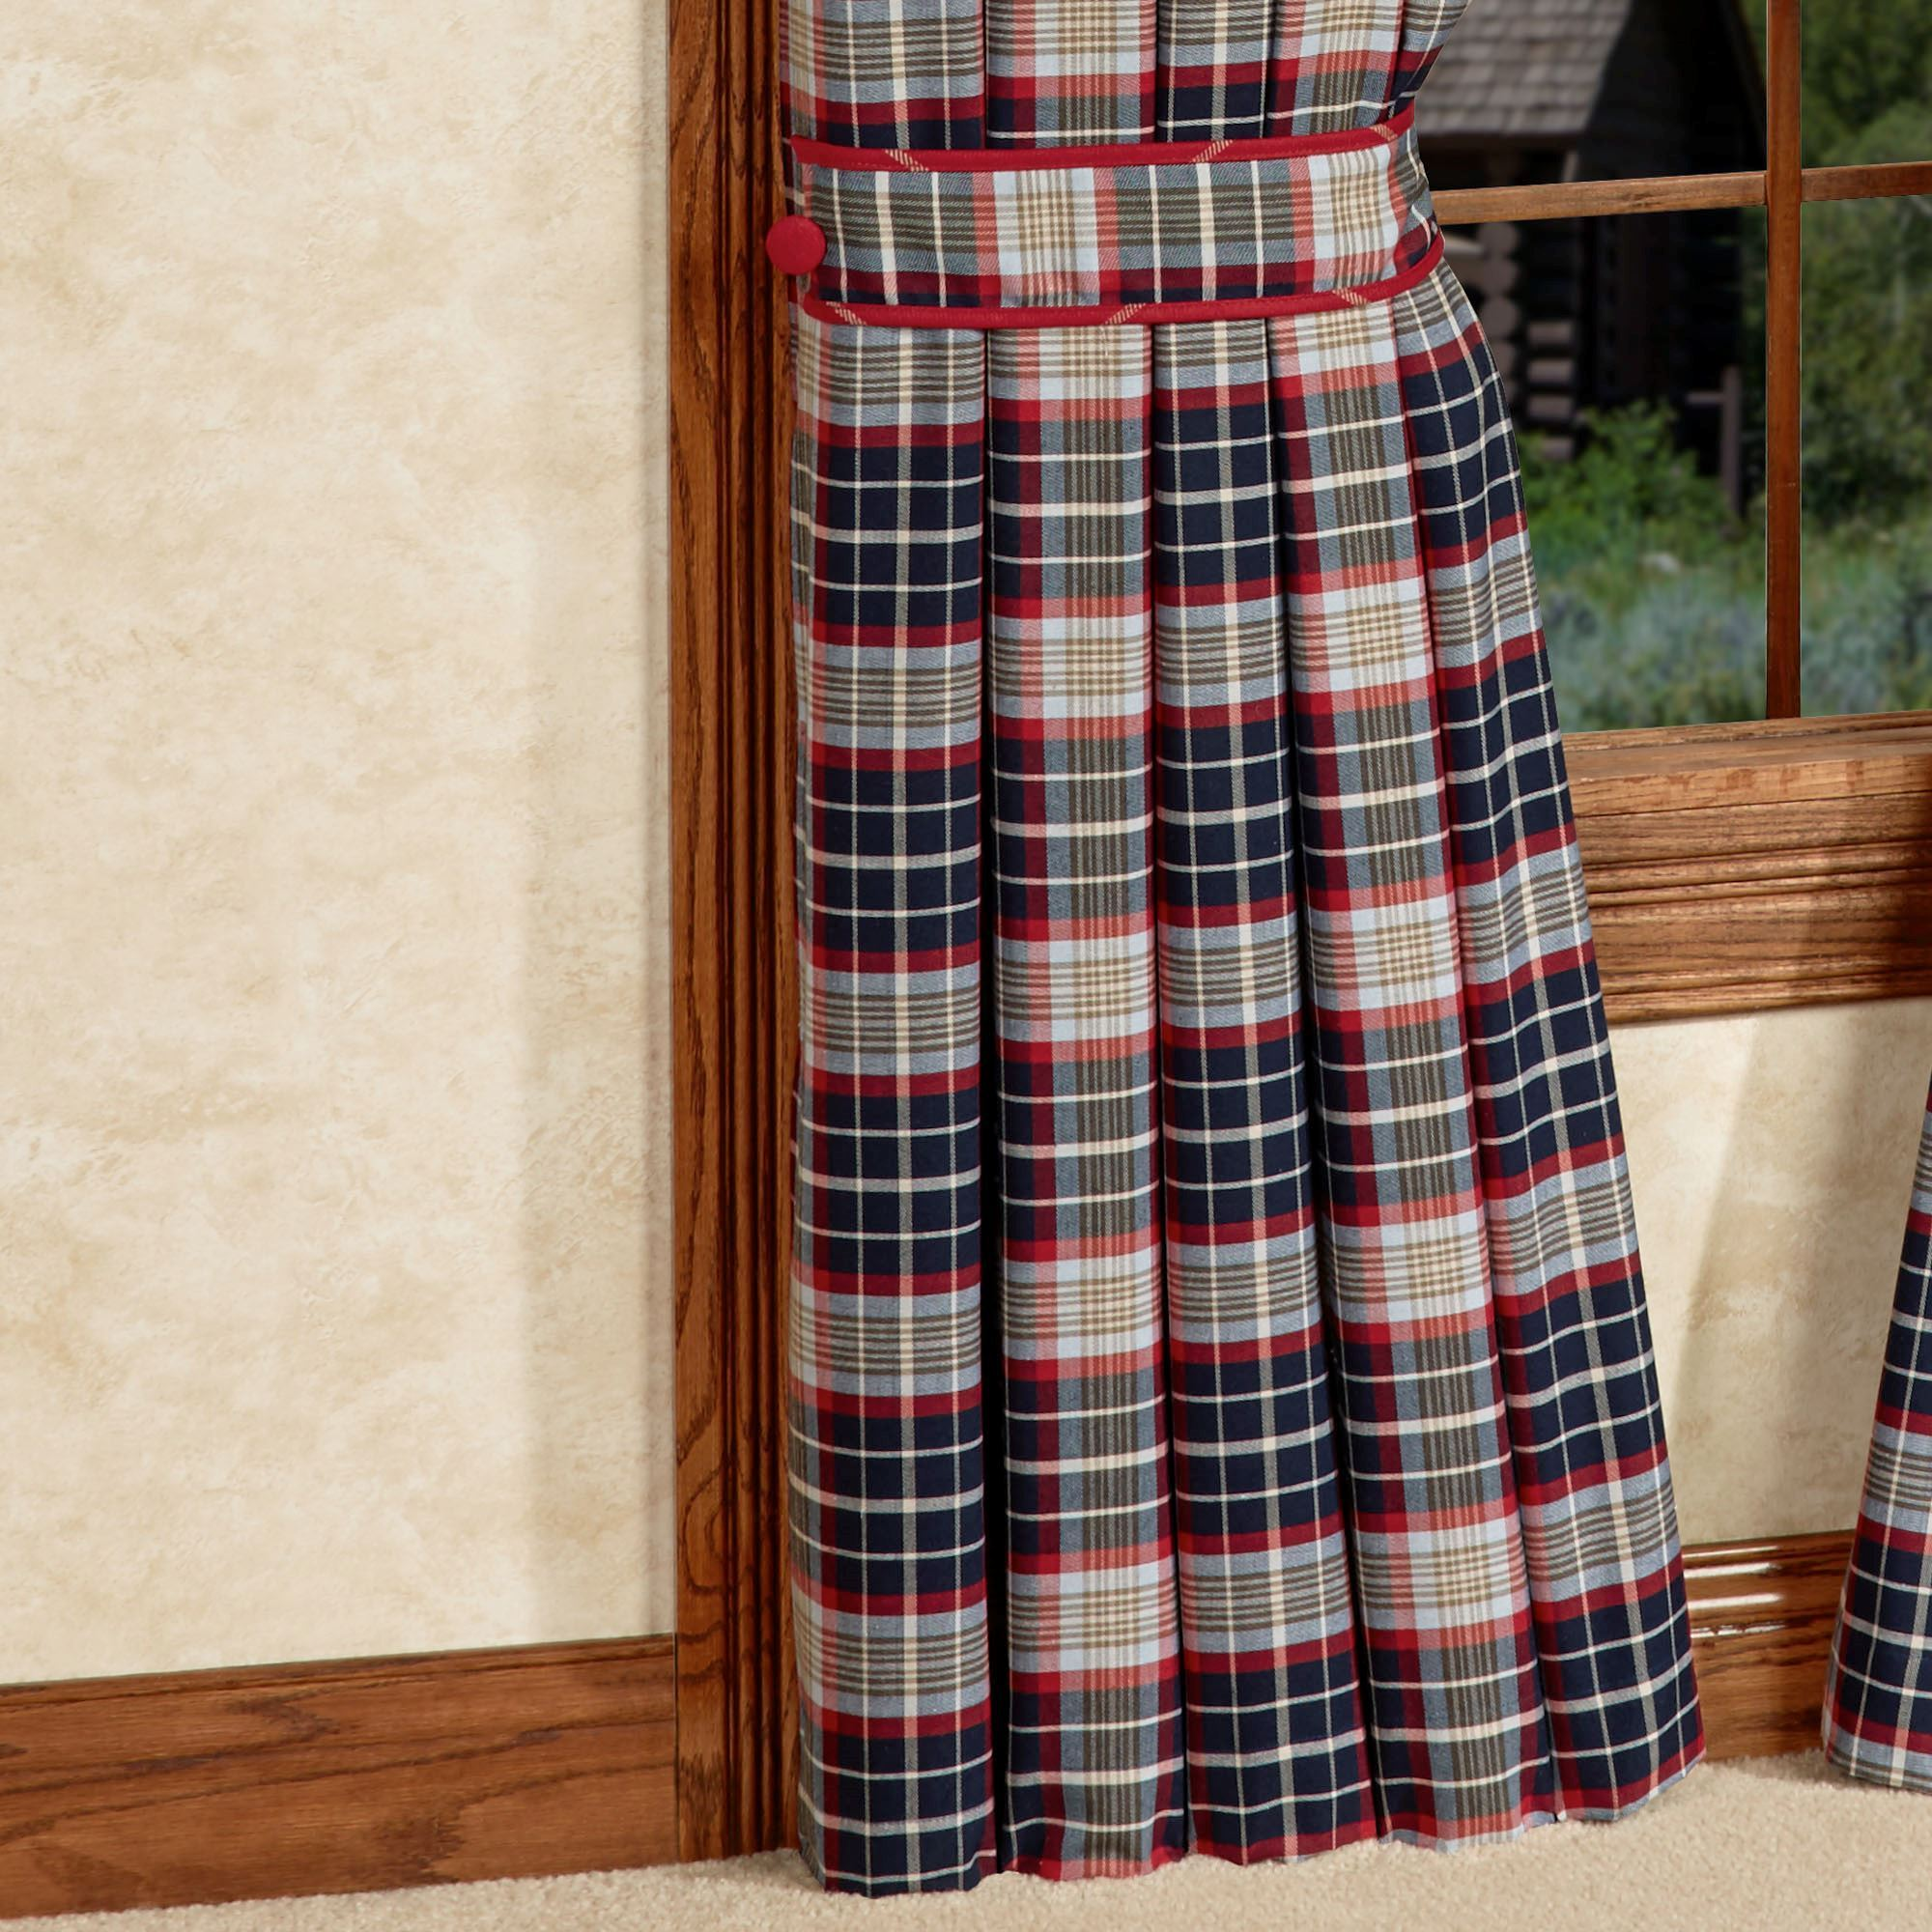 South haven tailored curtain panel navy 48 x 84